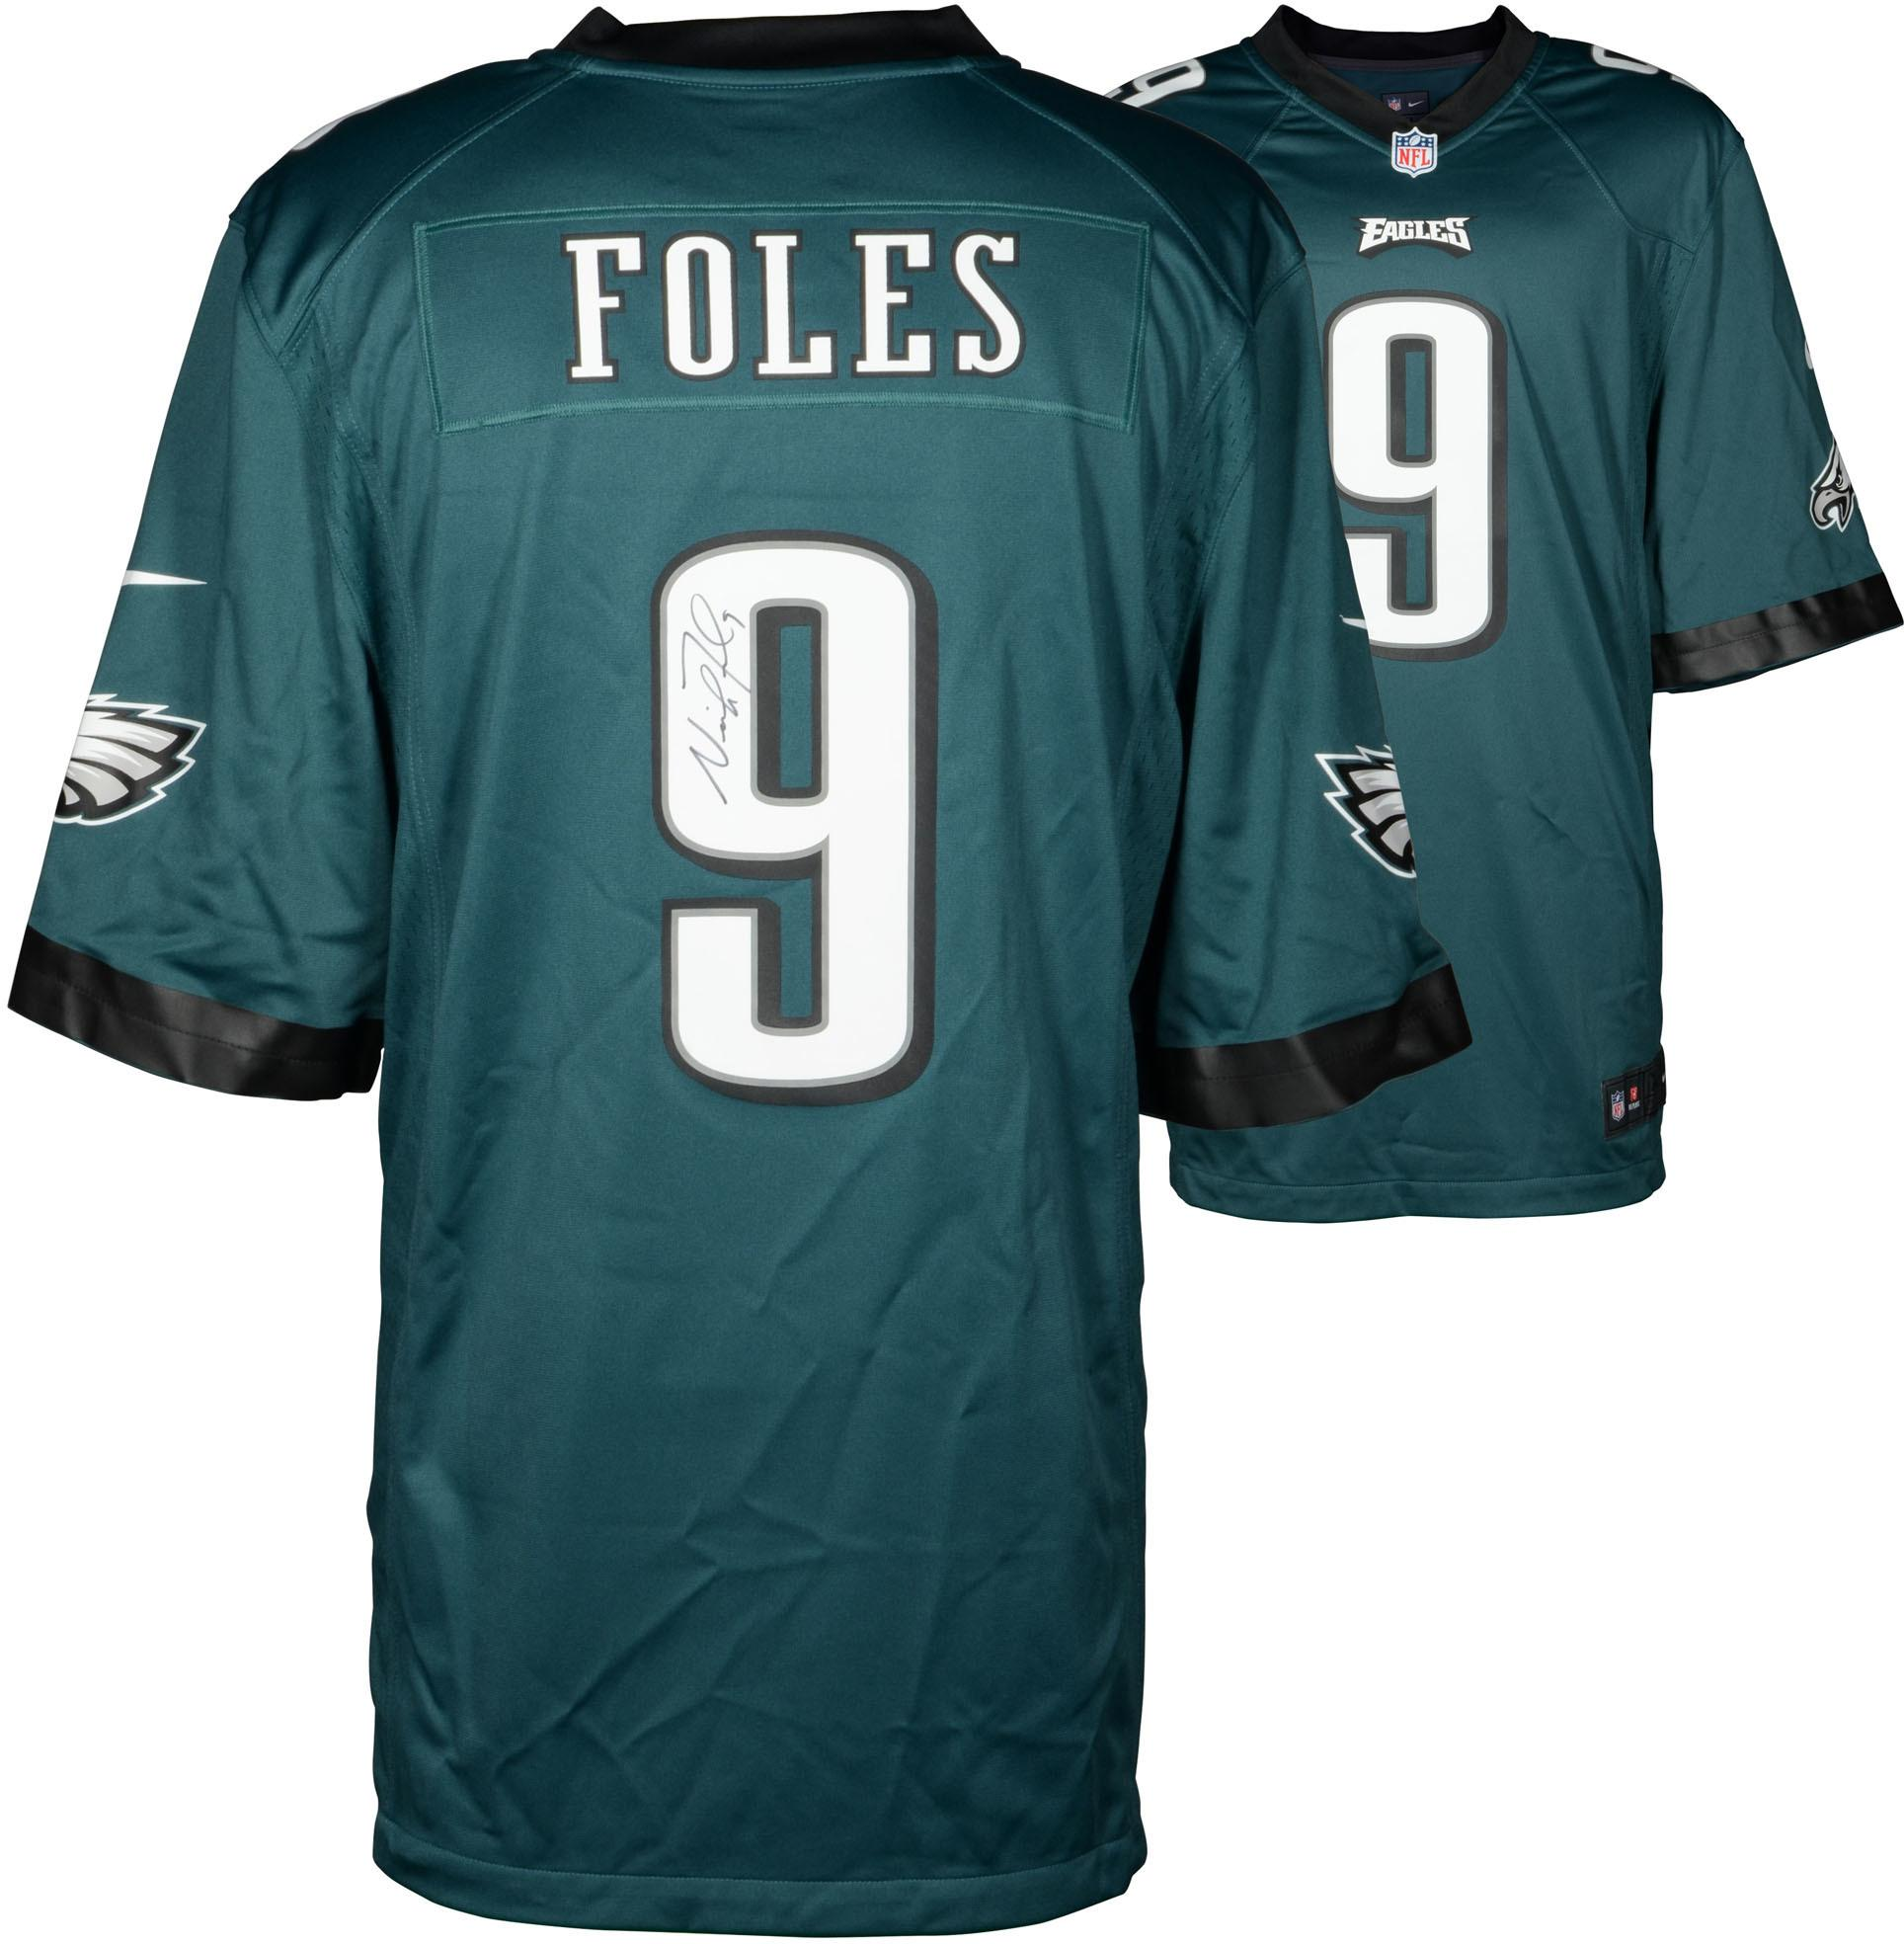 Nick Foles Philadelphia Eagles Autographed Game Green Jersey - Fanatics Authentic Certified